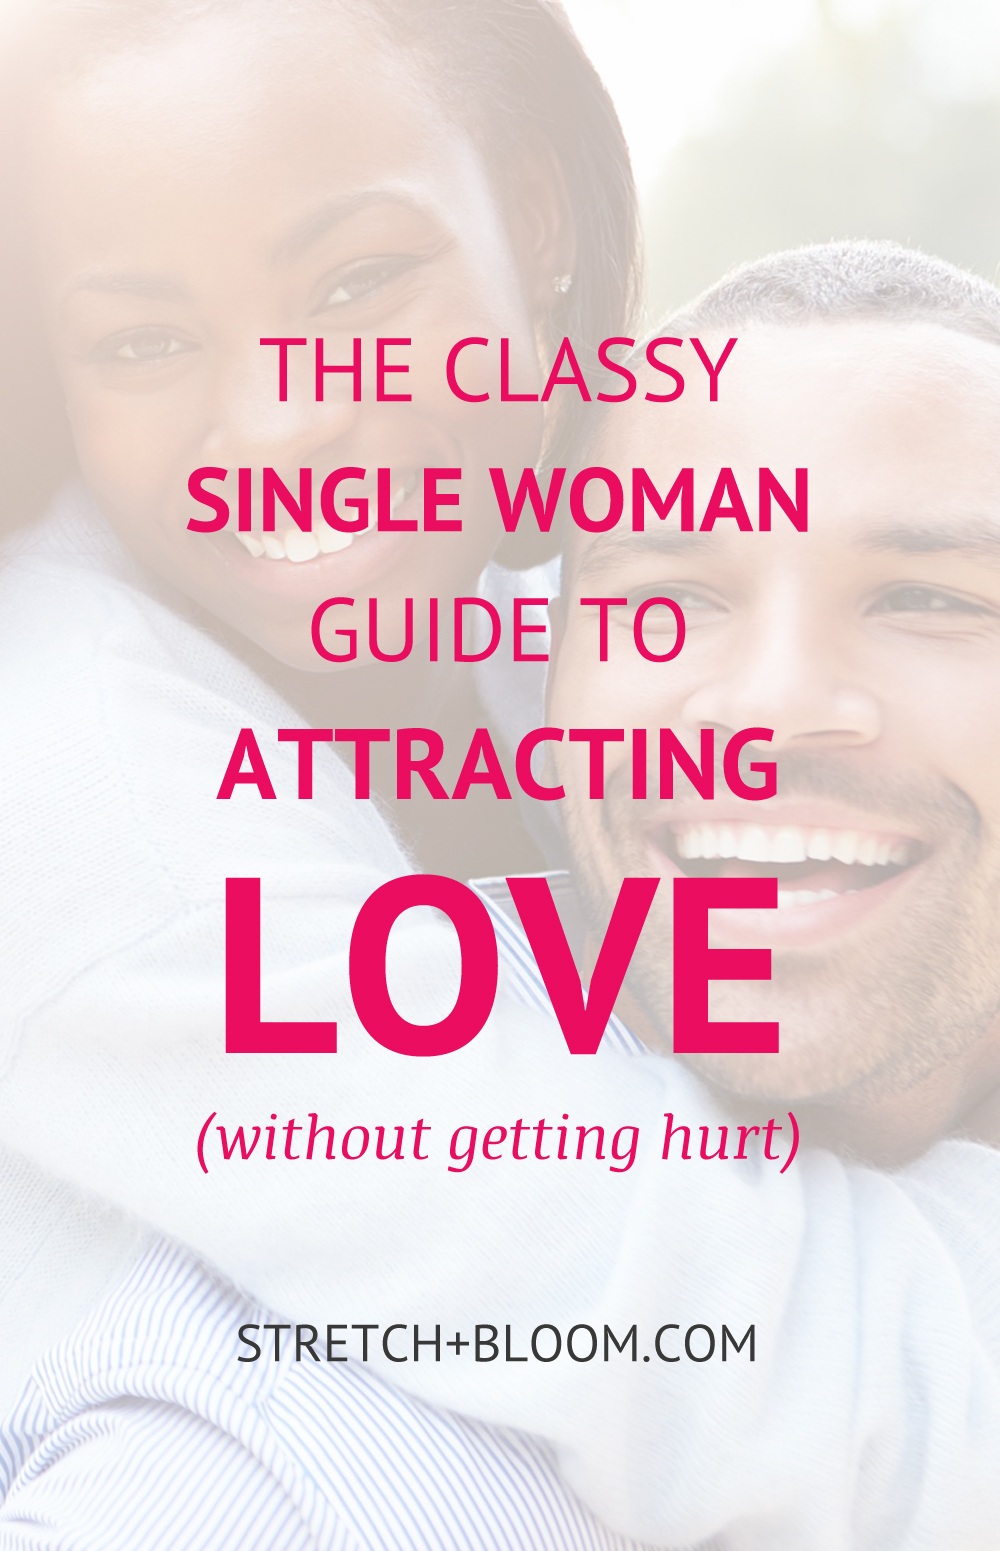 Classy single woman guide to attracting love without getting hurt